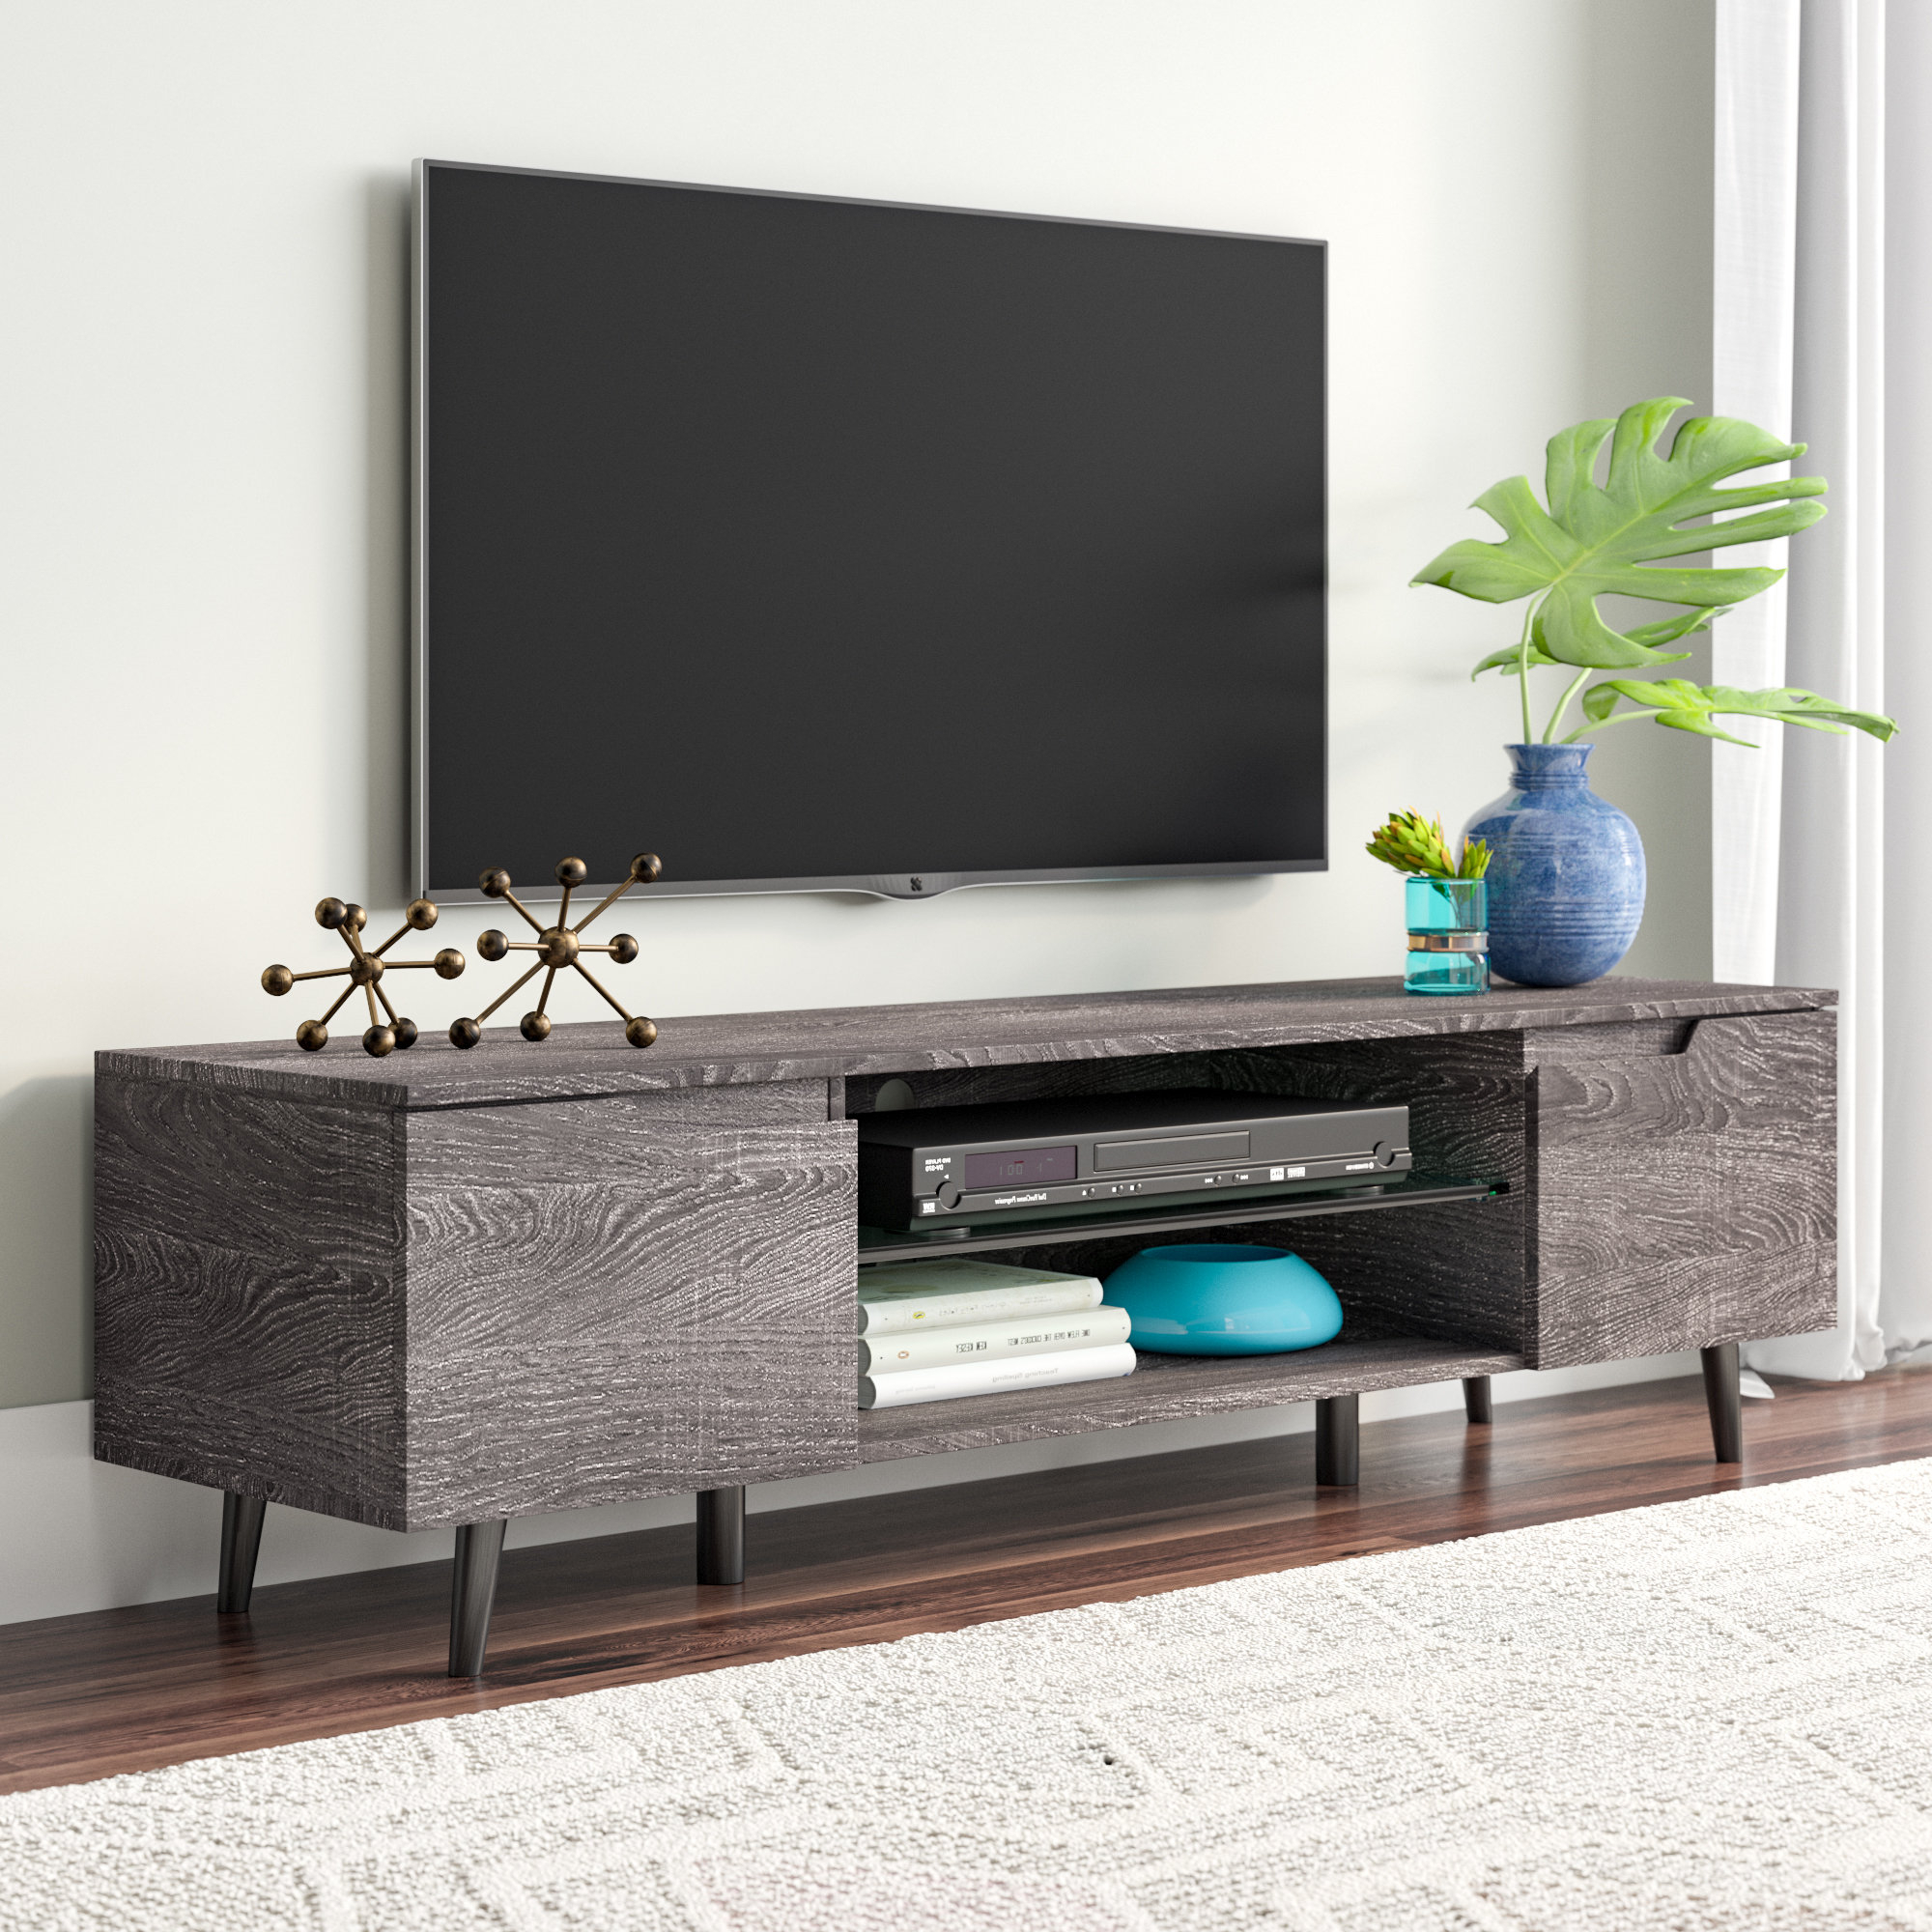 Trendy Metal Tv Stands You'll Love (View 12 of 20)